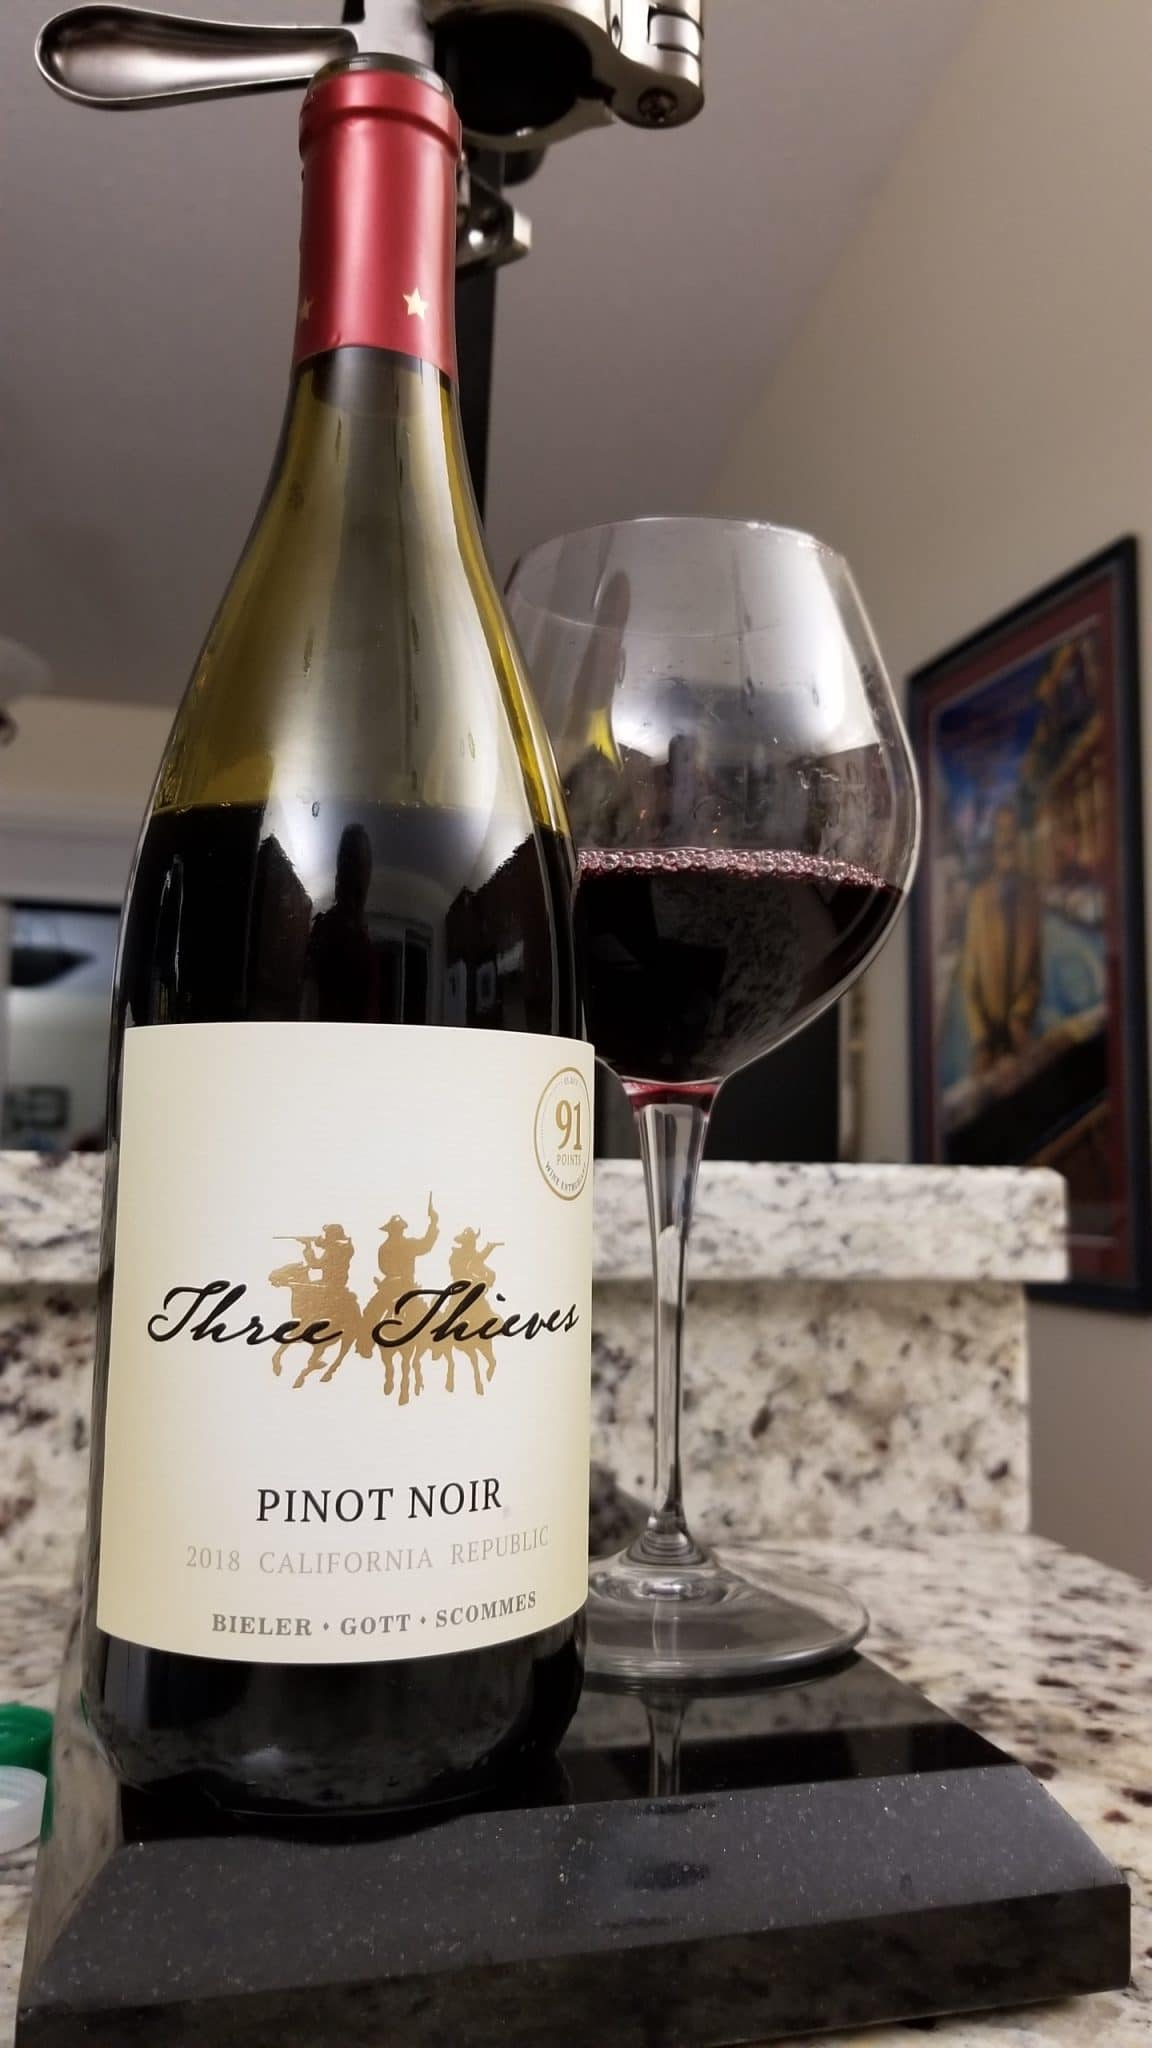 $17.95 - Three Thieves Pinot Noir 2018